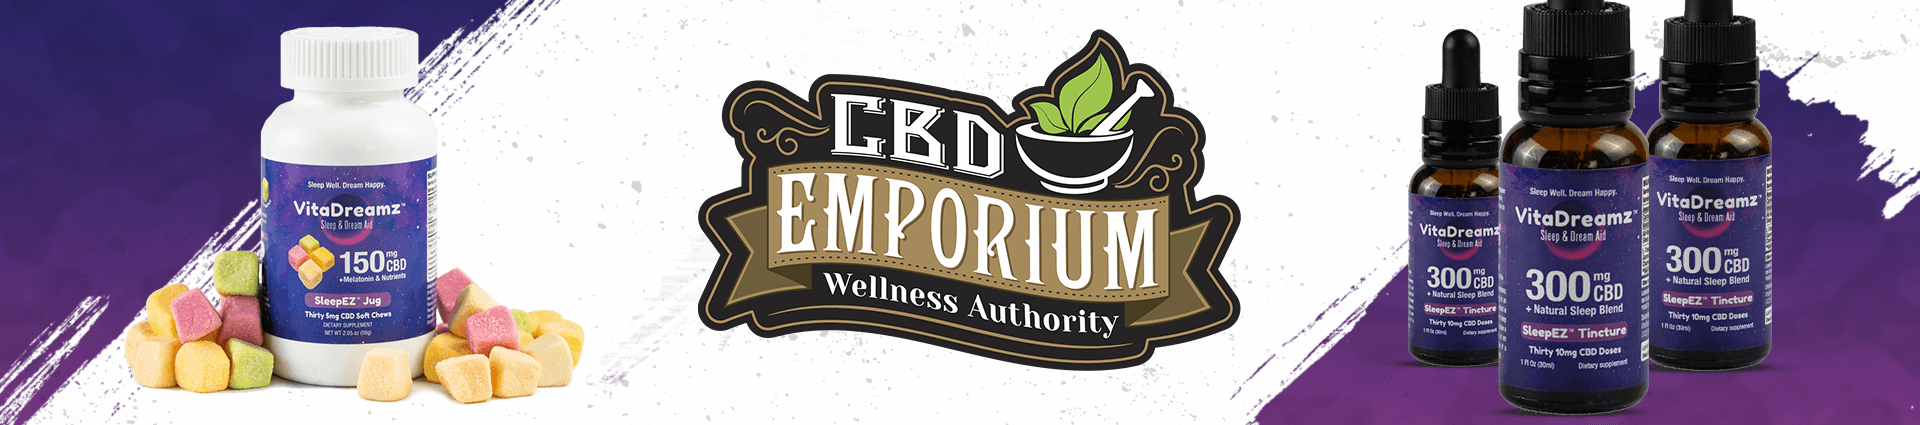 VitaDreamz CBD Sleep Aid Supplements from CBD Emporium (footer)